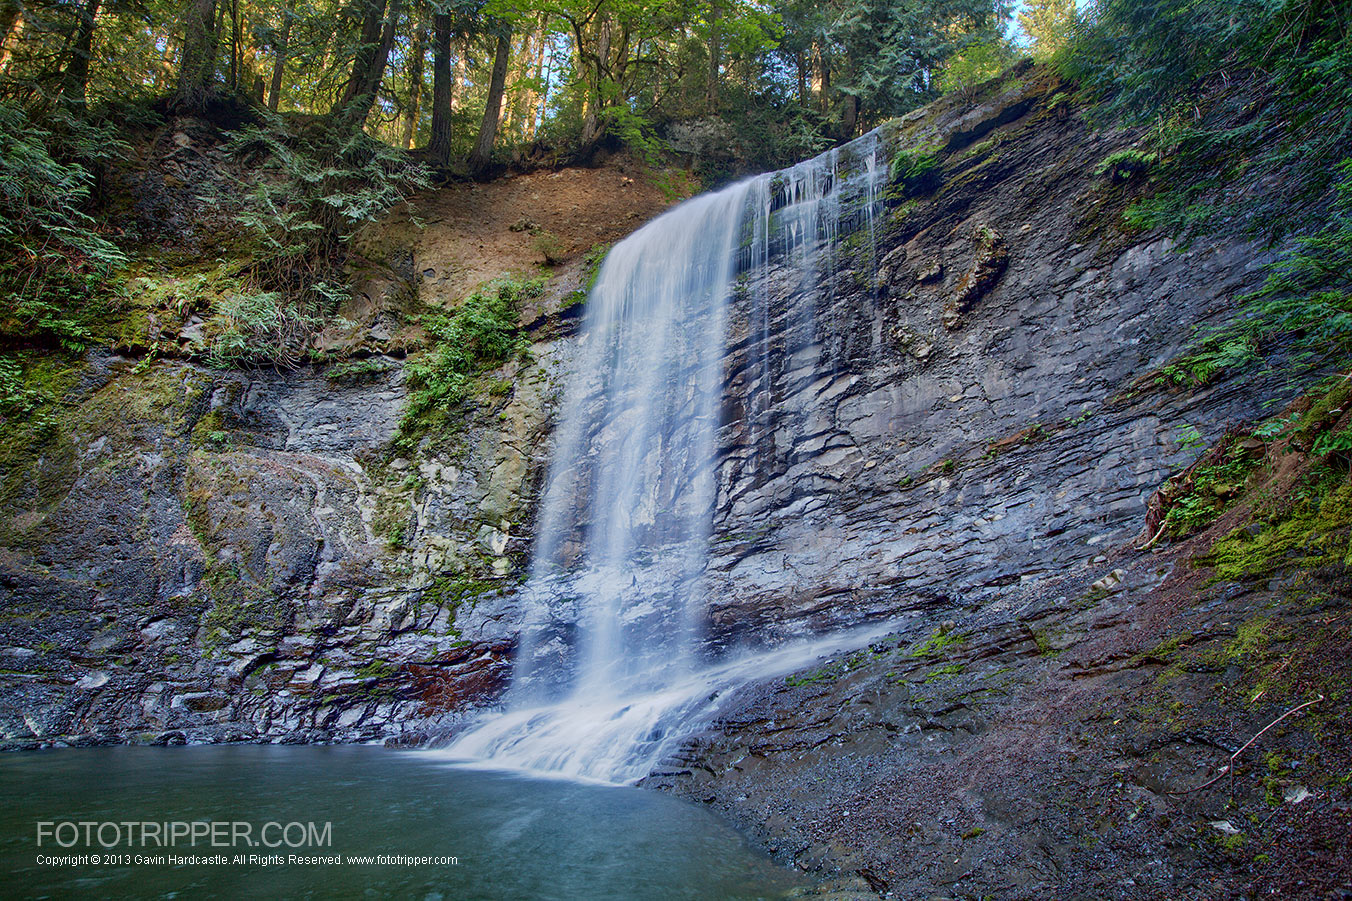 Ammonite Falls Photo Guide